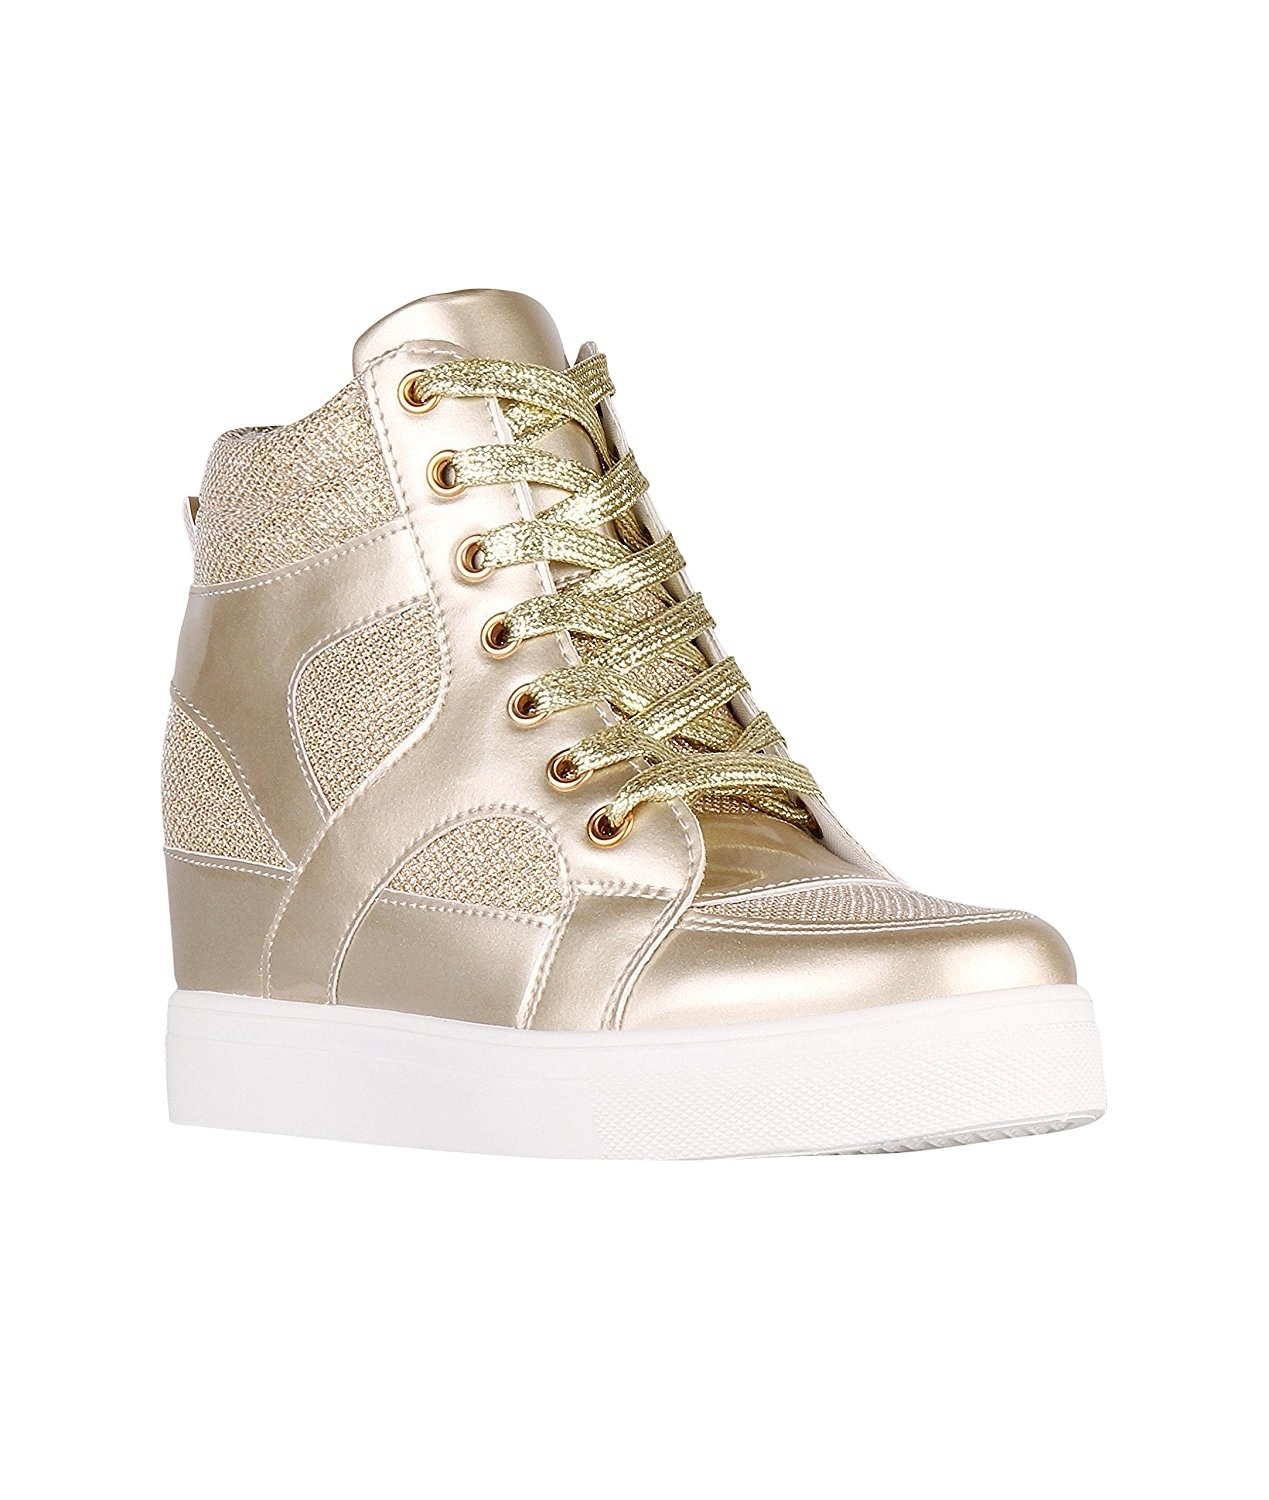 264385da0b09 23. A pair of hidden wedge metallic sneakers for when you don t want to  give up on your high-heel addiction just yet.